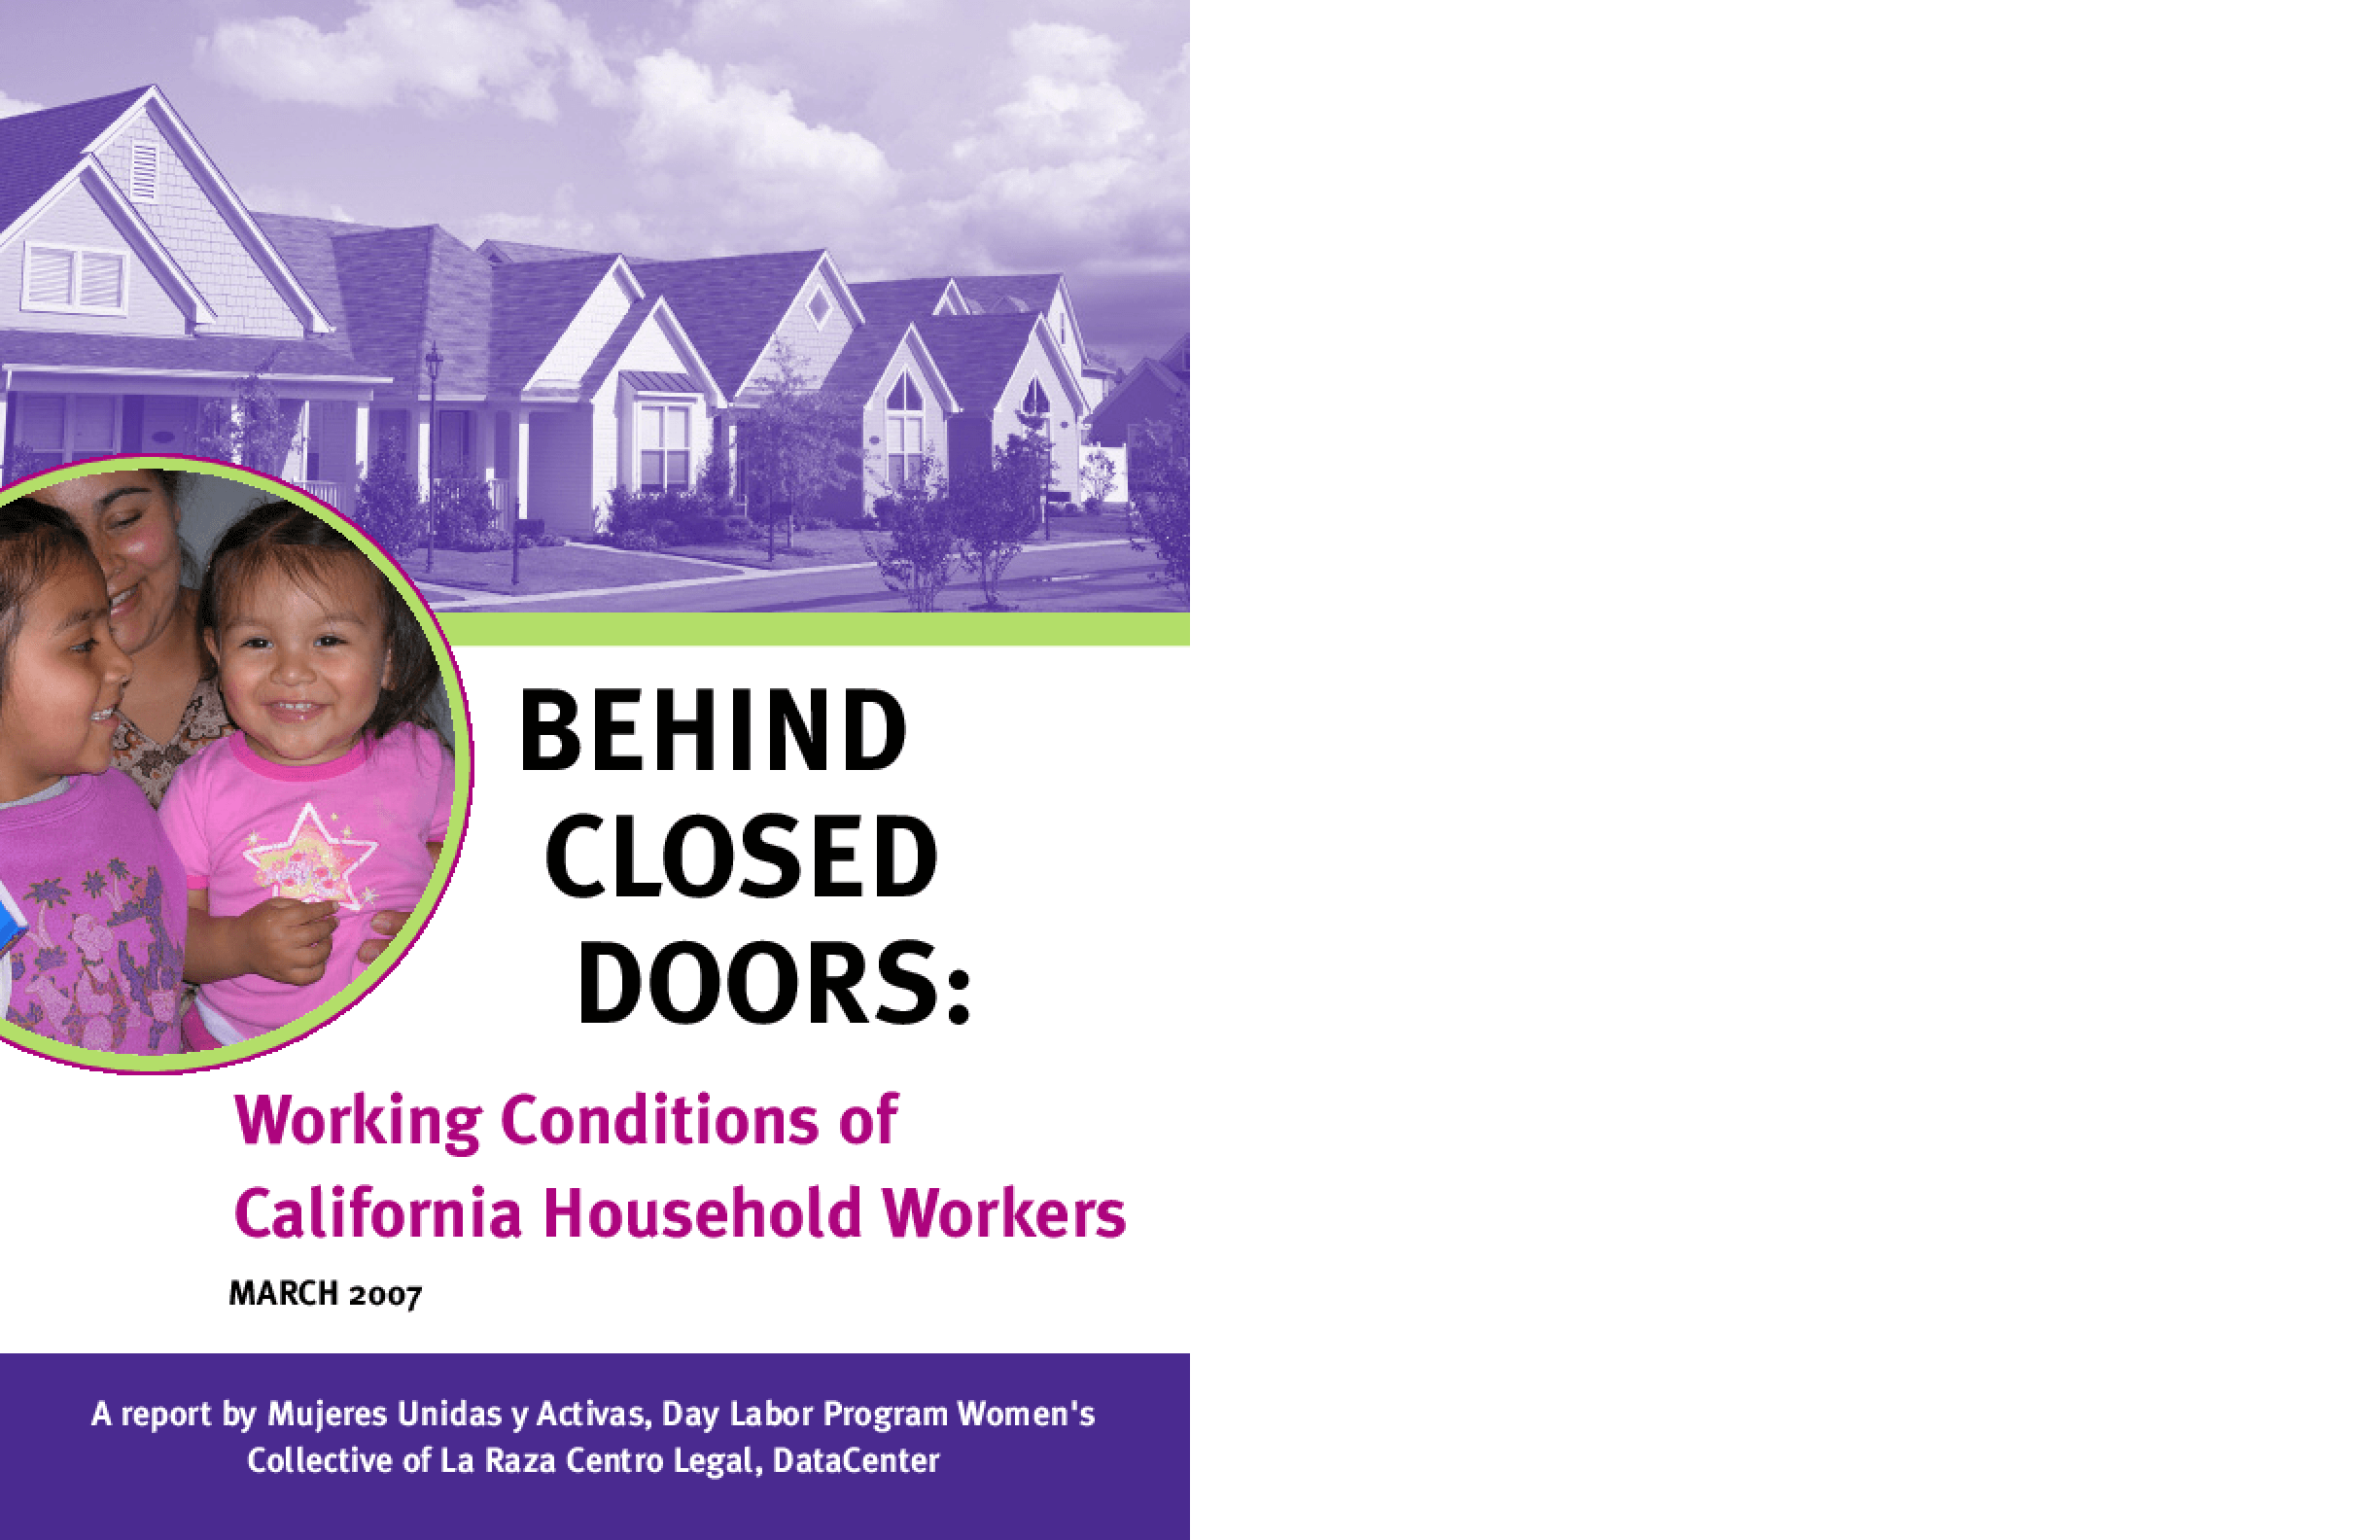 Behind Closed Doors: Working Conditions of California Household Workers